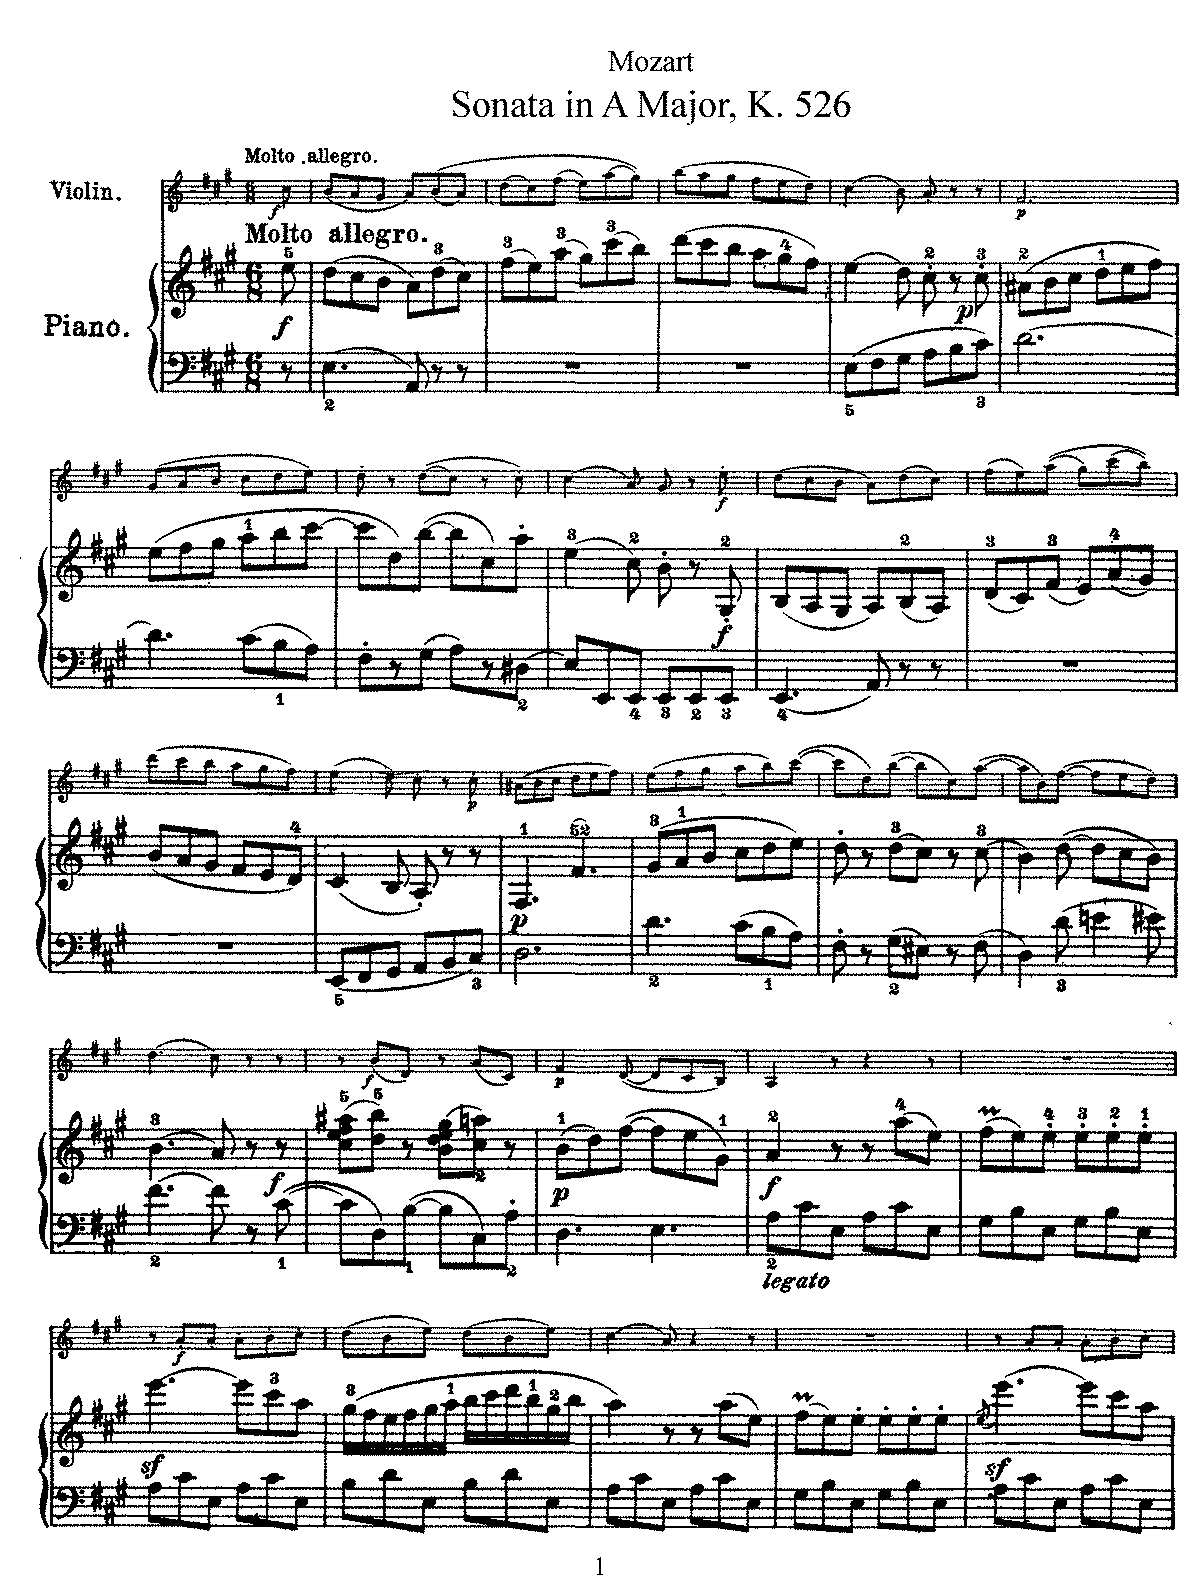 Violin Sonata in A major, K.526 (Mozart, Wolfgang Amadeus) - IMSLP ...